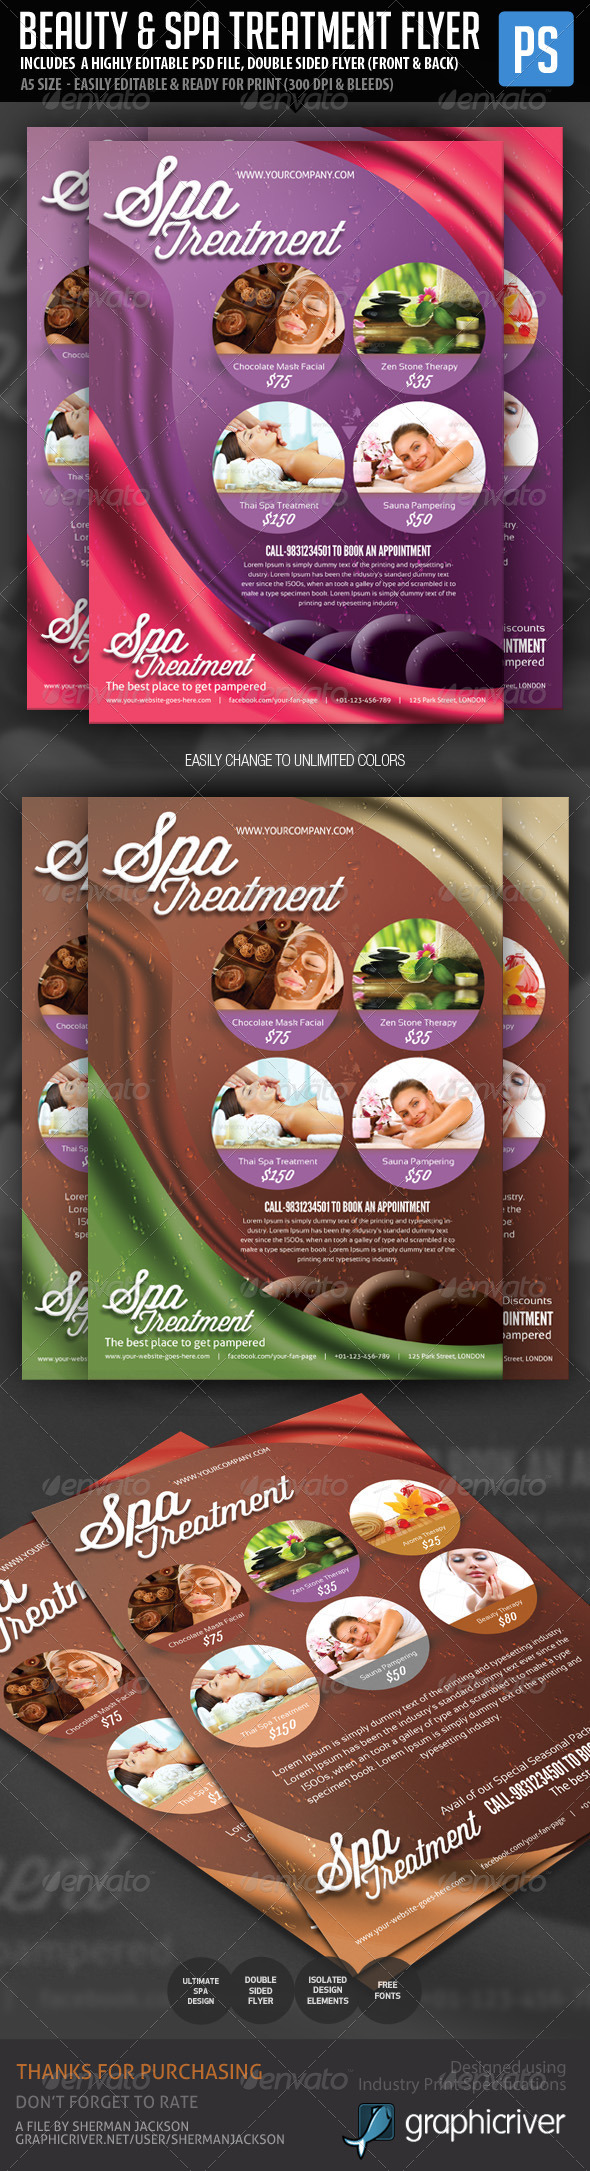 Beauty & Spa Treatment Flyer  - Corporate Flyers